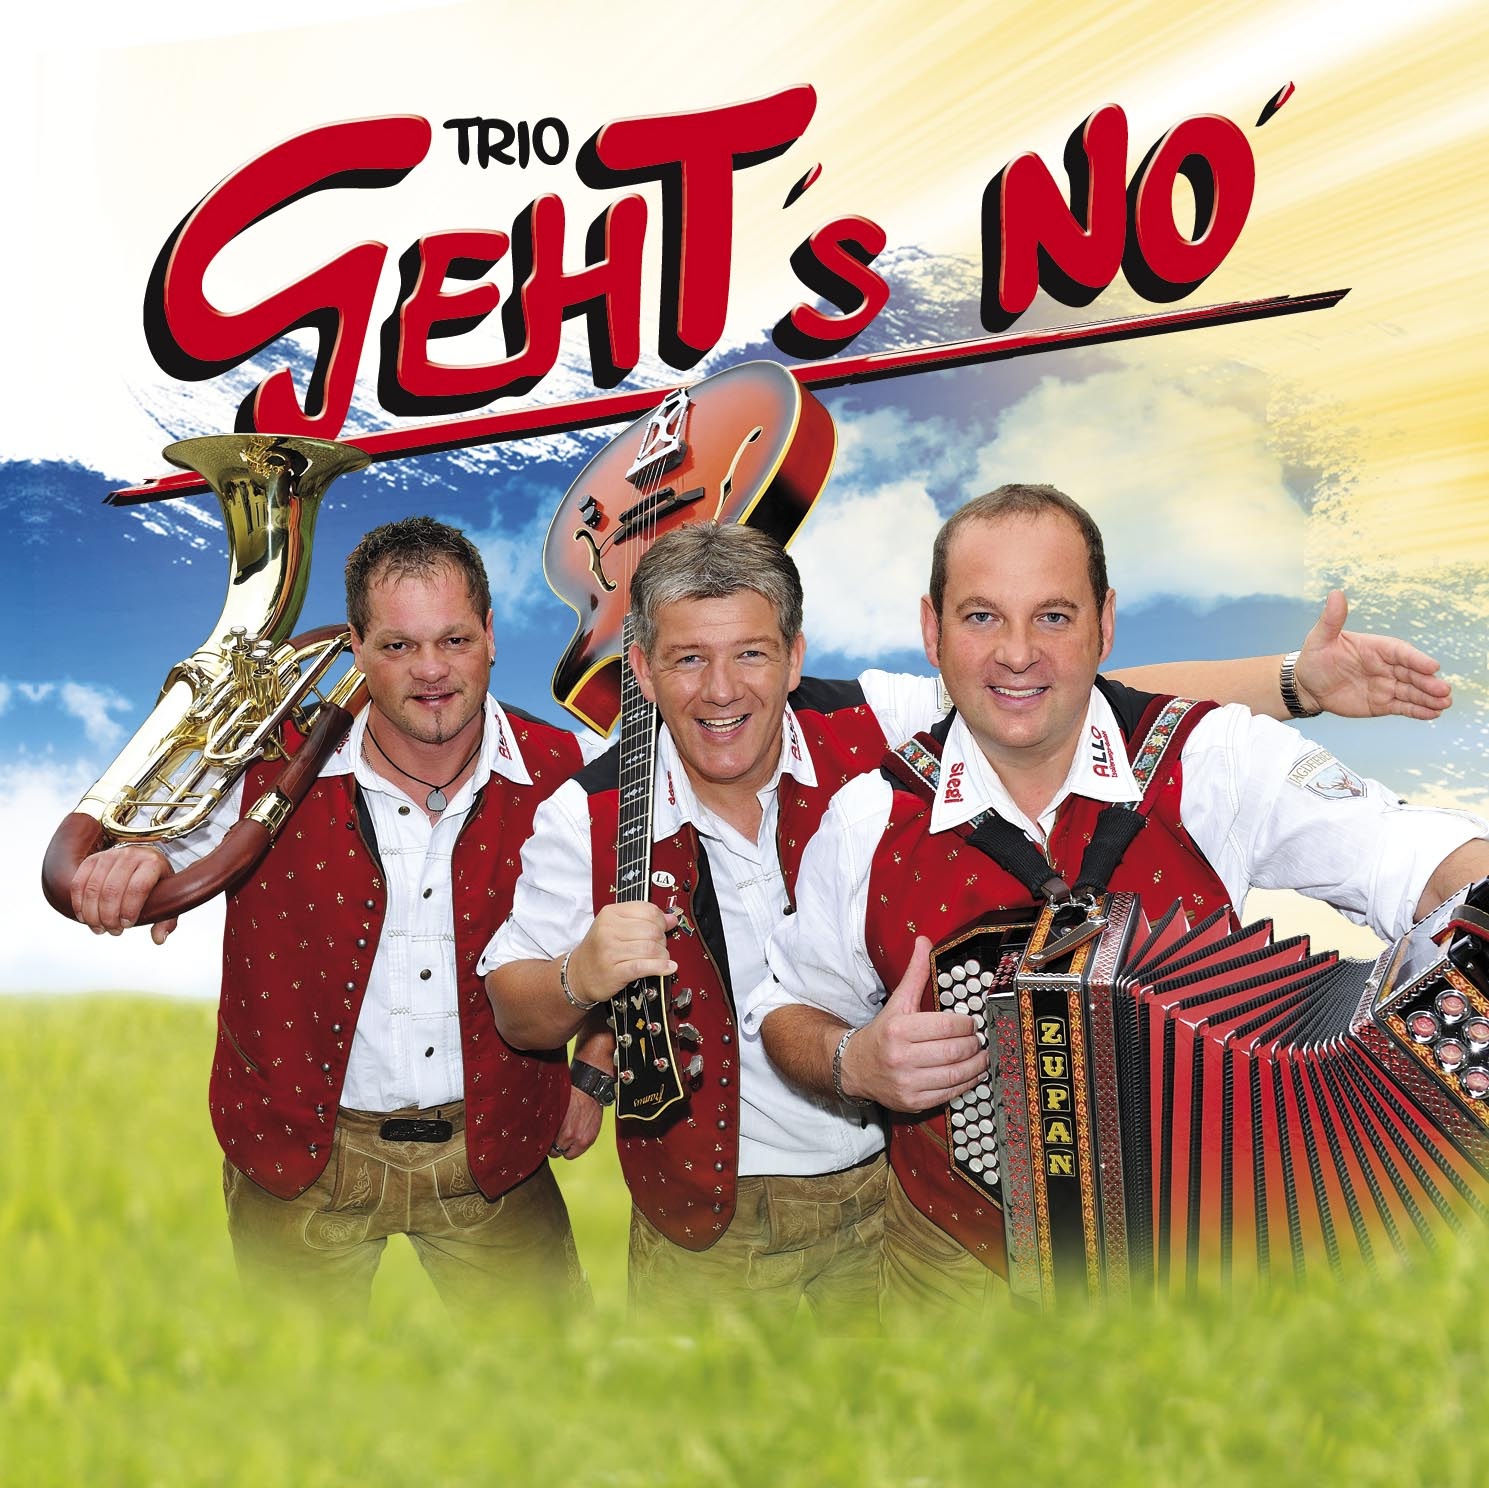 Trio Gehts no